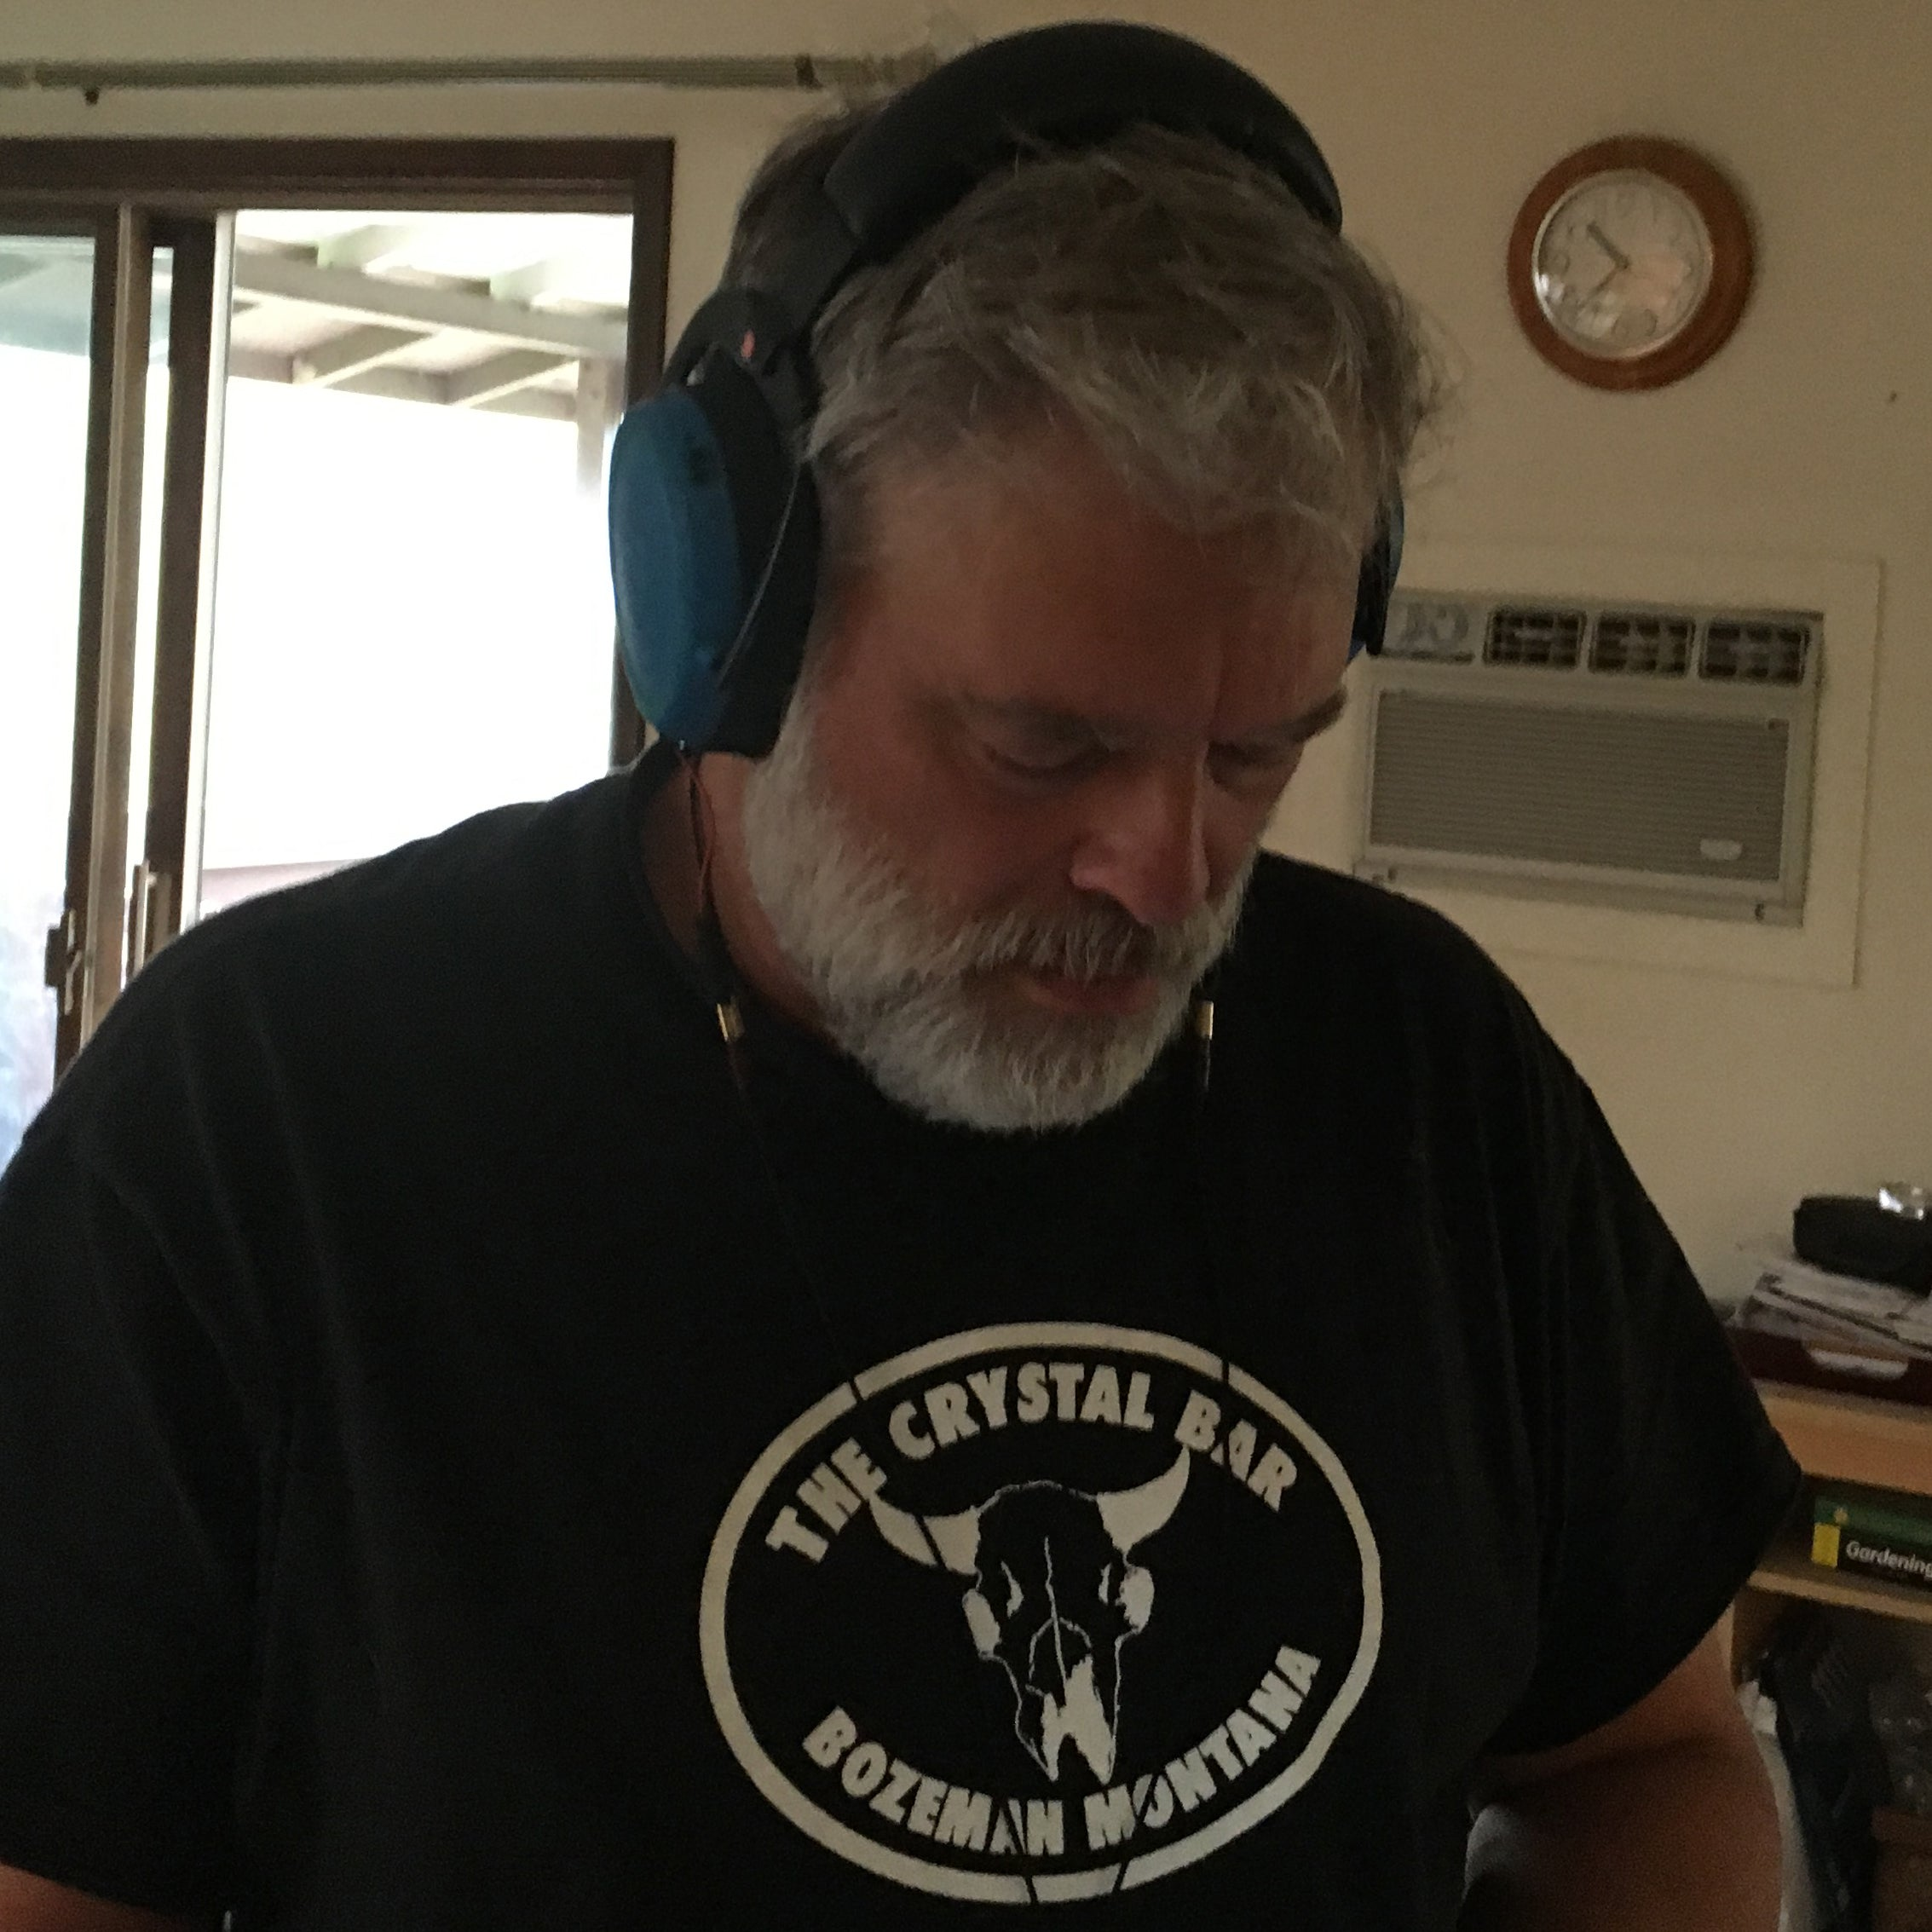 Tyll Hertsens listens to the HeadRoom Cosmic Headphone